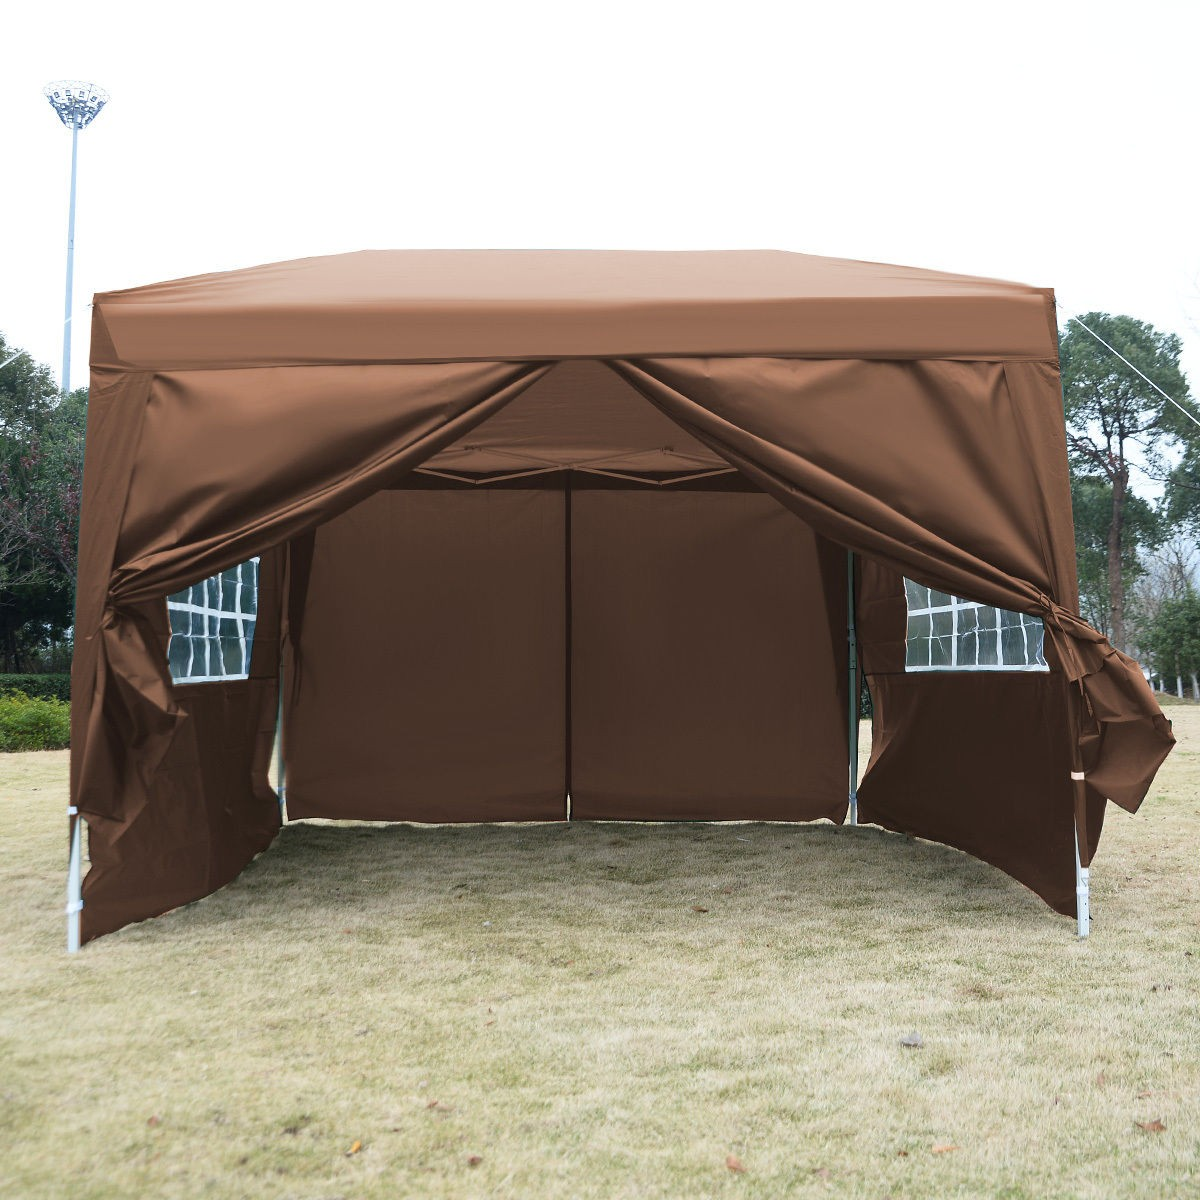 10 x 10 EZ Pop Up Tent Canopy Cafe Brown  sc 1 st  Wholesale Event Tents & 10 x 10 EZ Pop Up Tent Canopy Gazebo